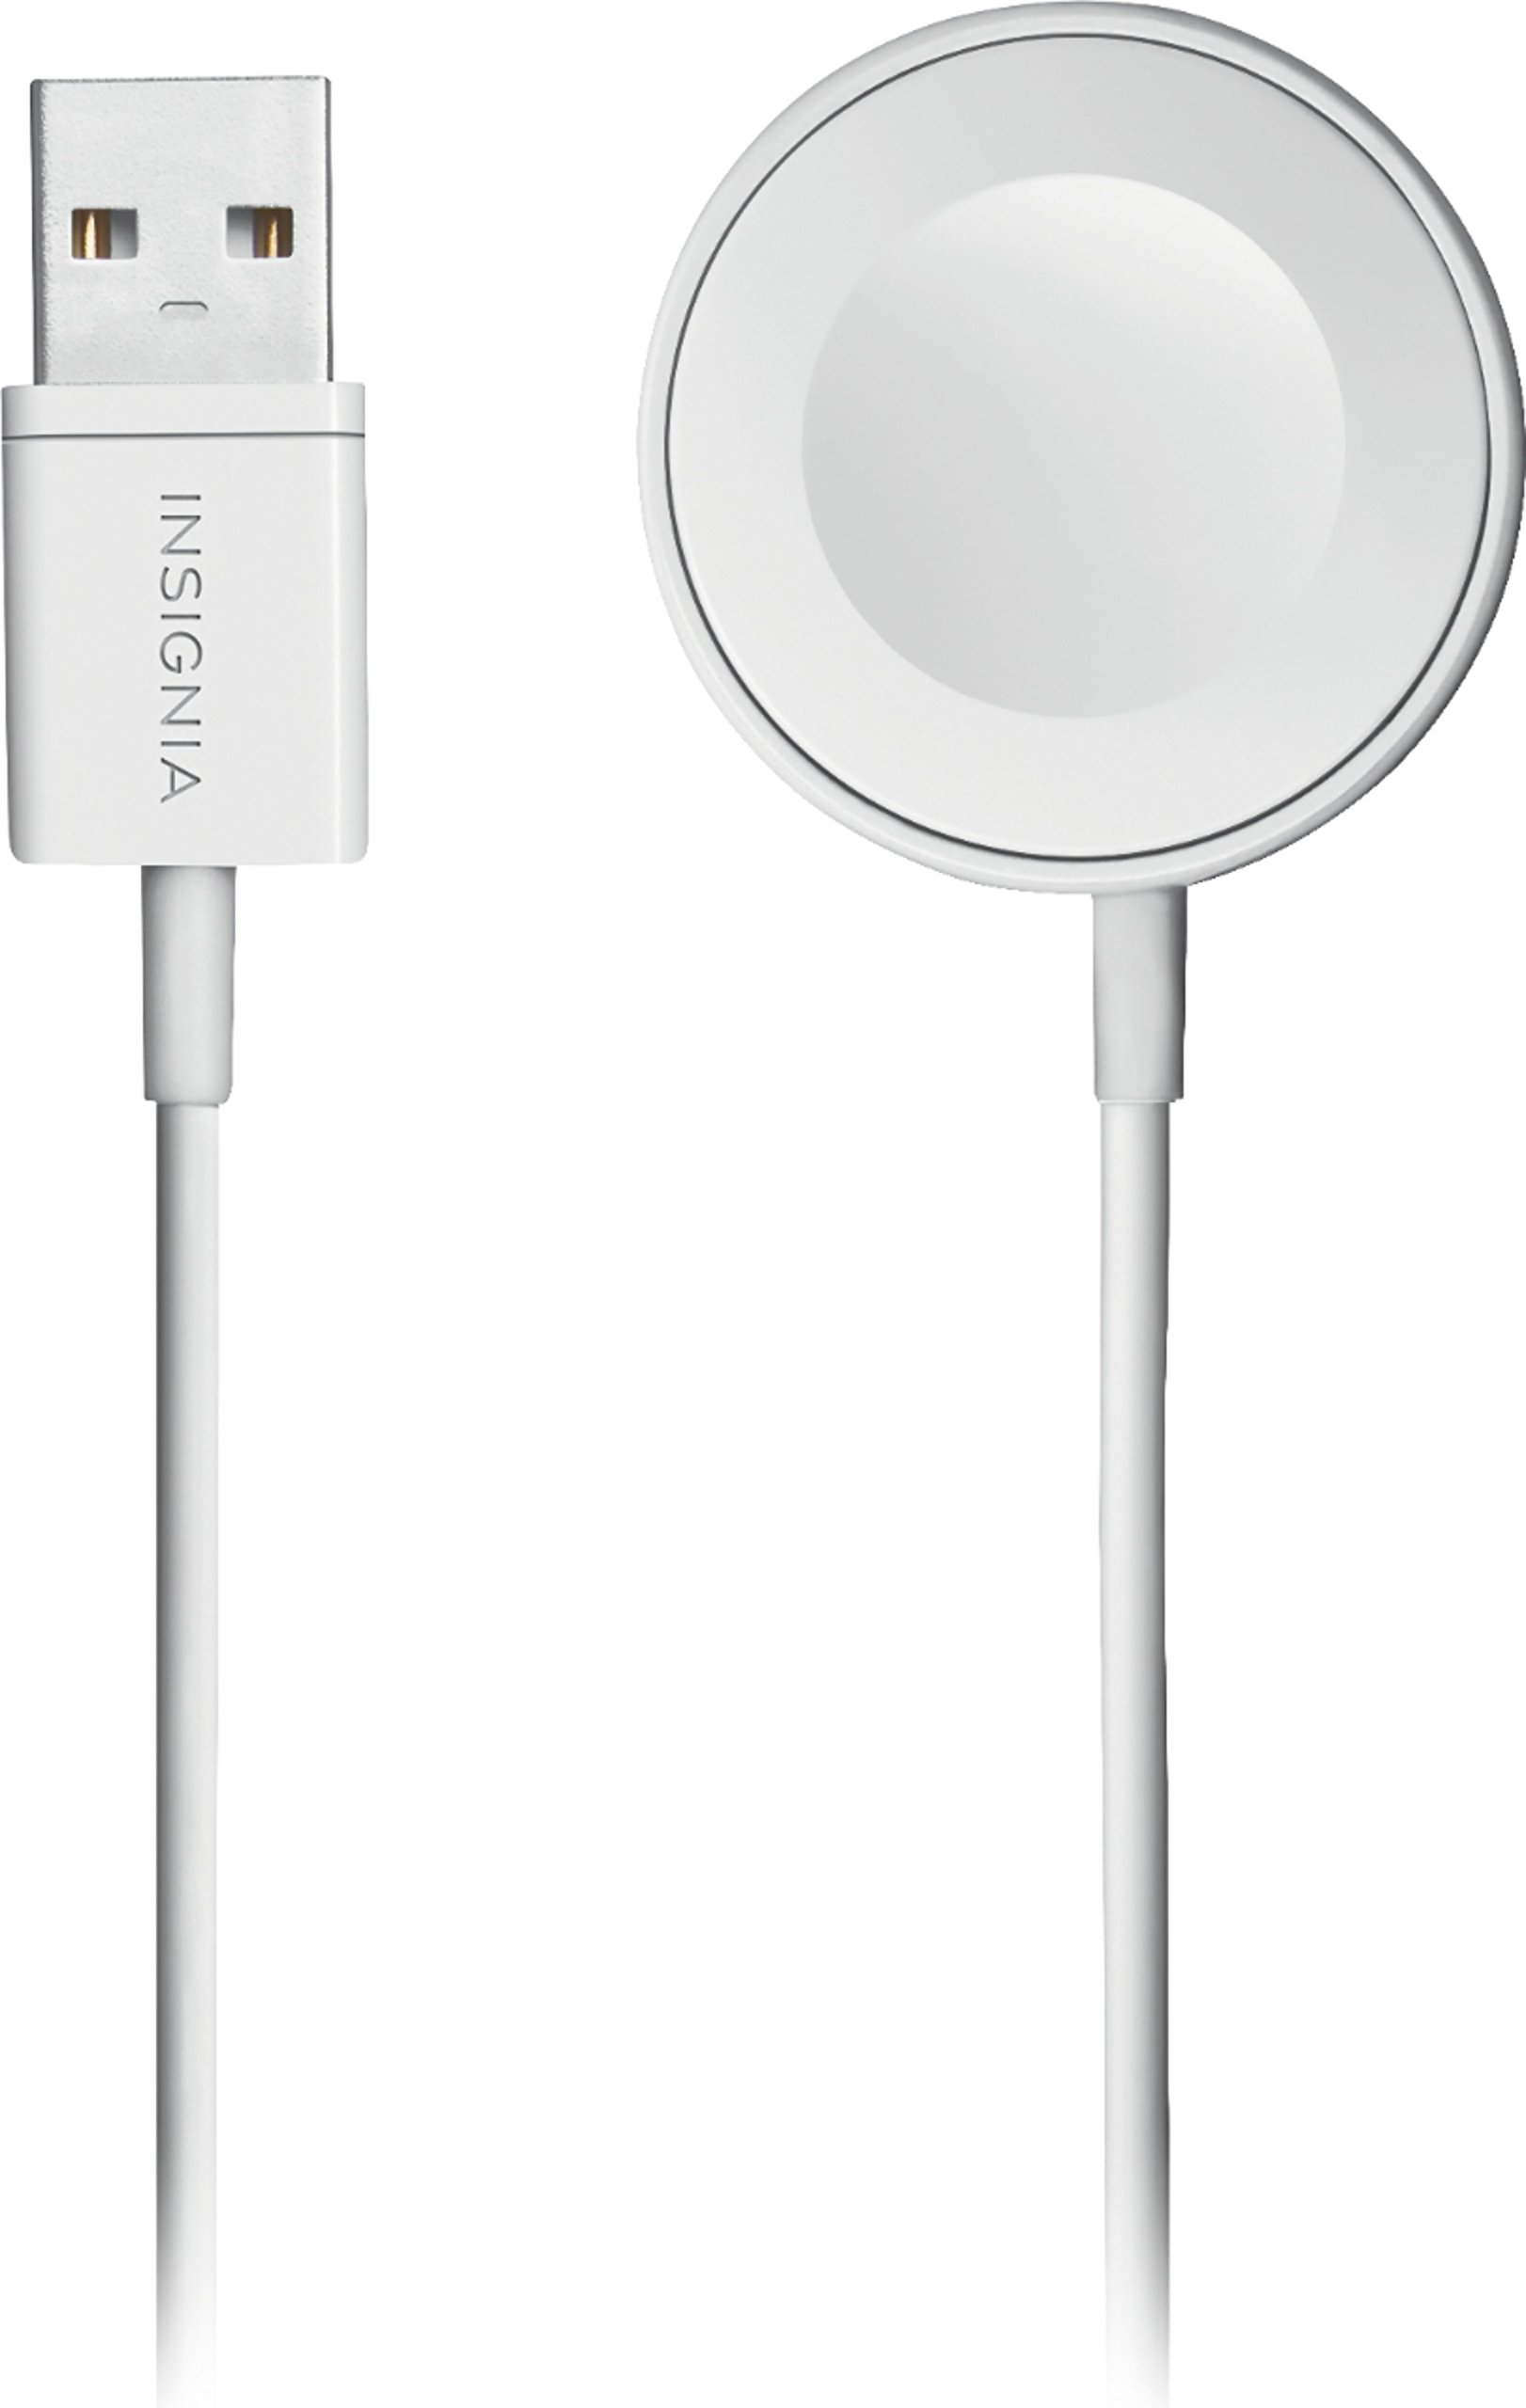 Apple MFi Certified 6' Magnetic Charging Cable for Apple Watch - White